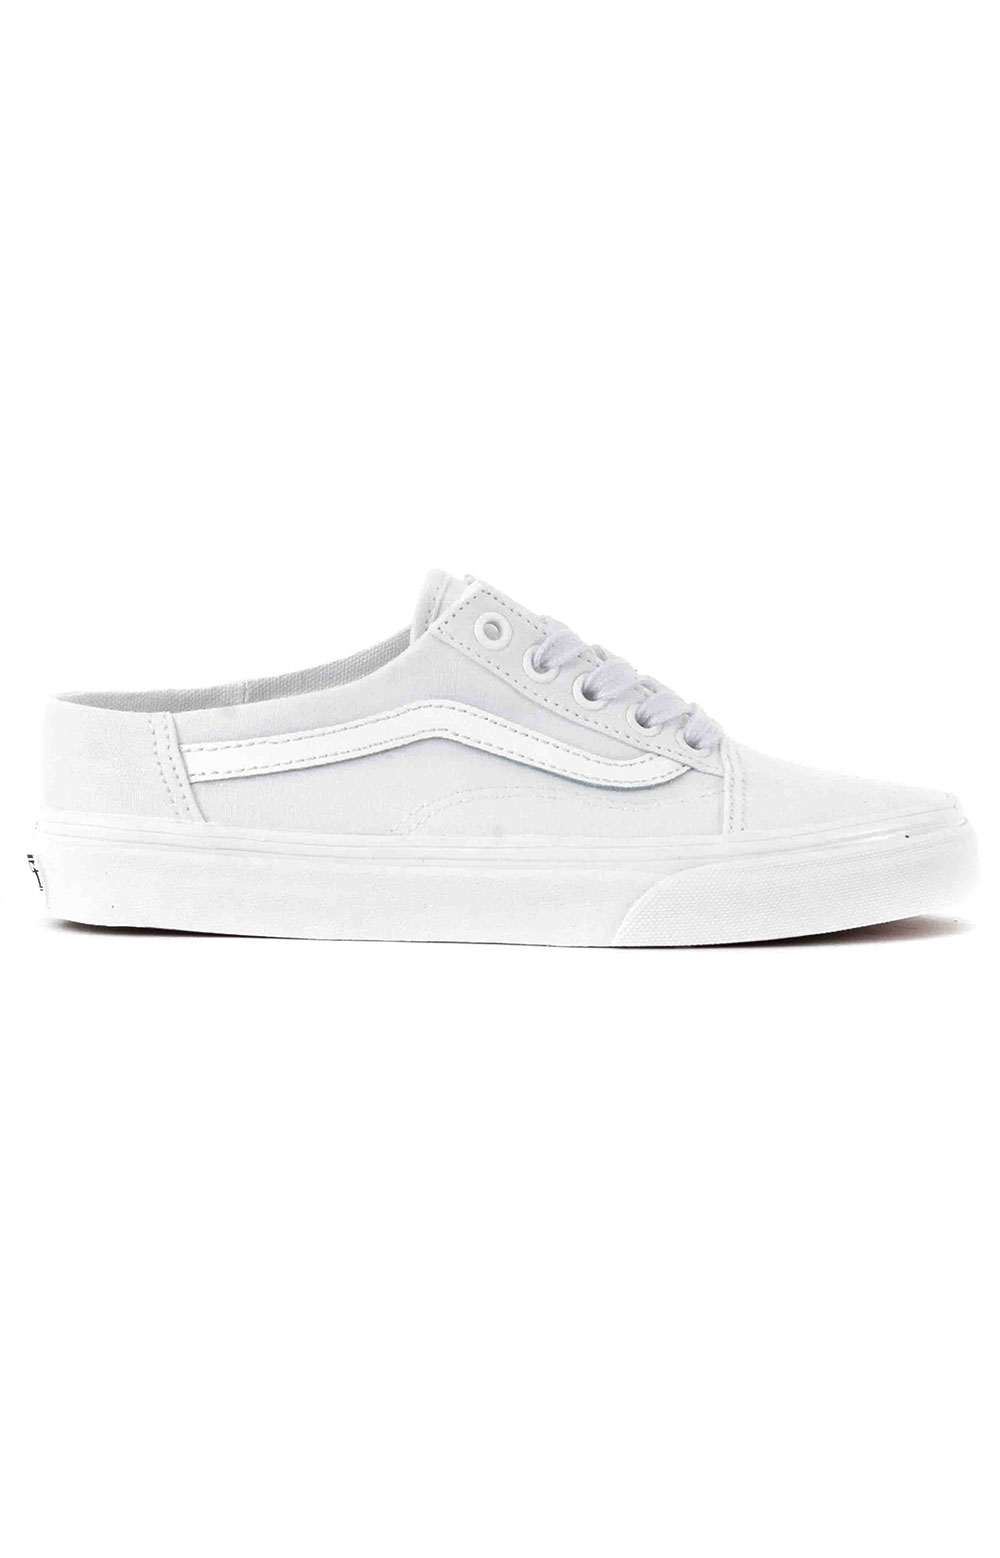 (P3YWC6) Old Skool Mule Shoe - White/True White